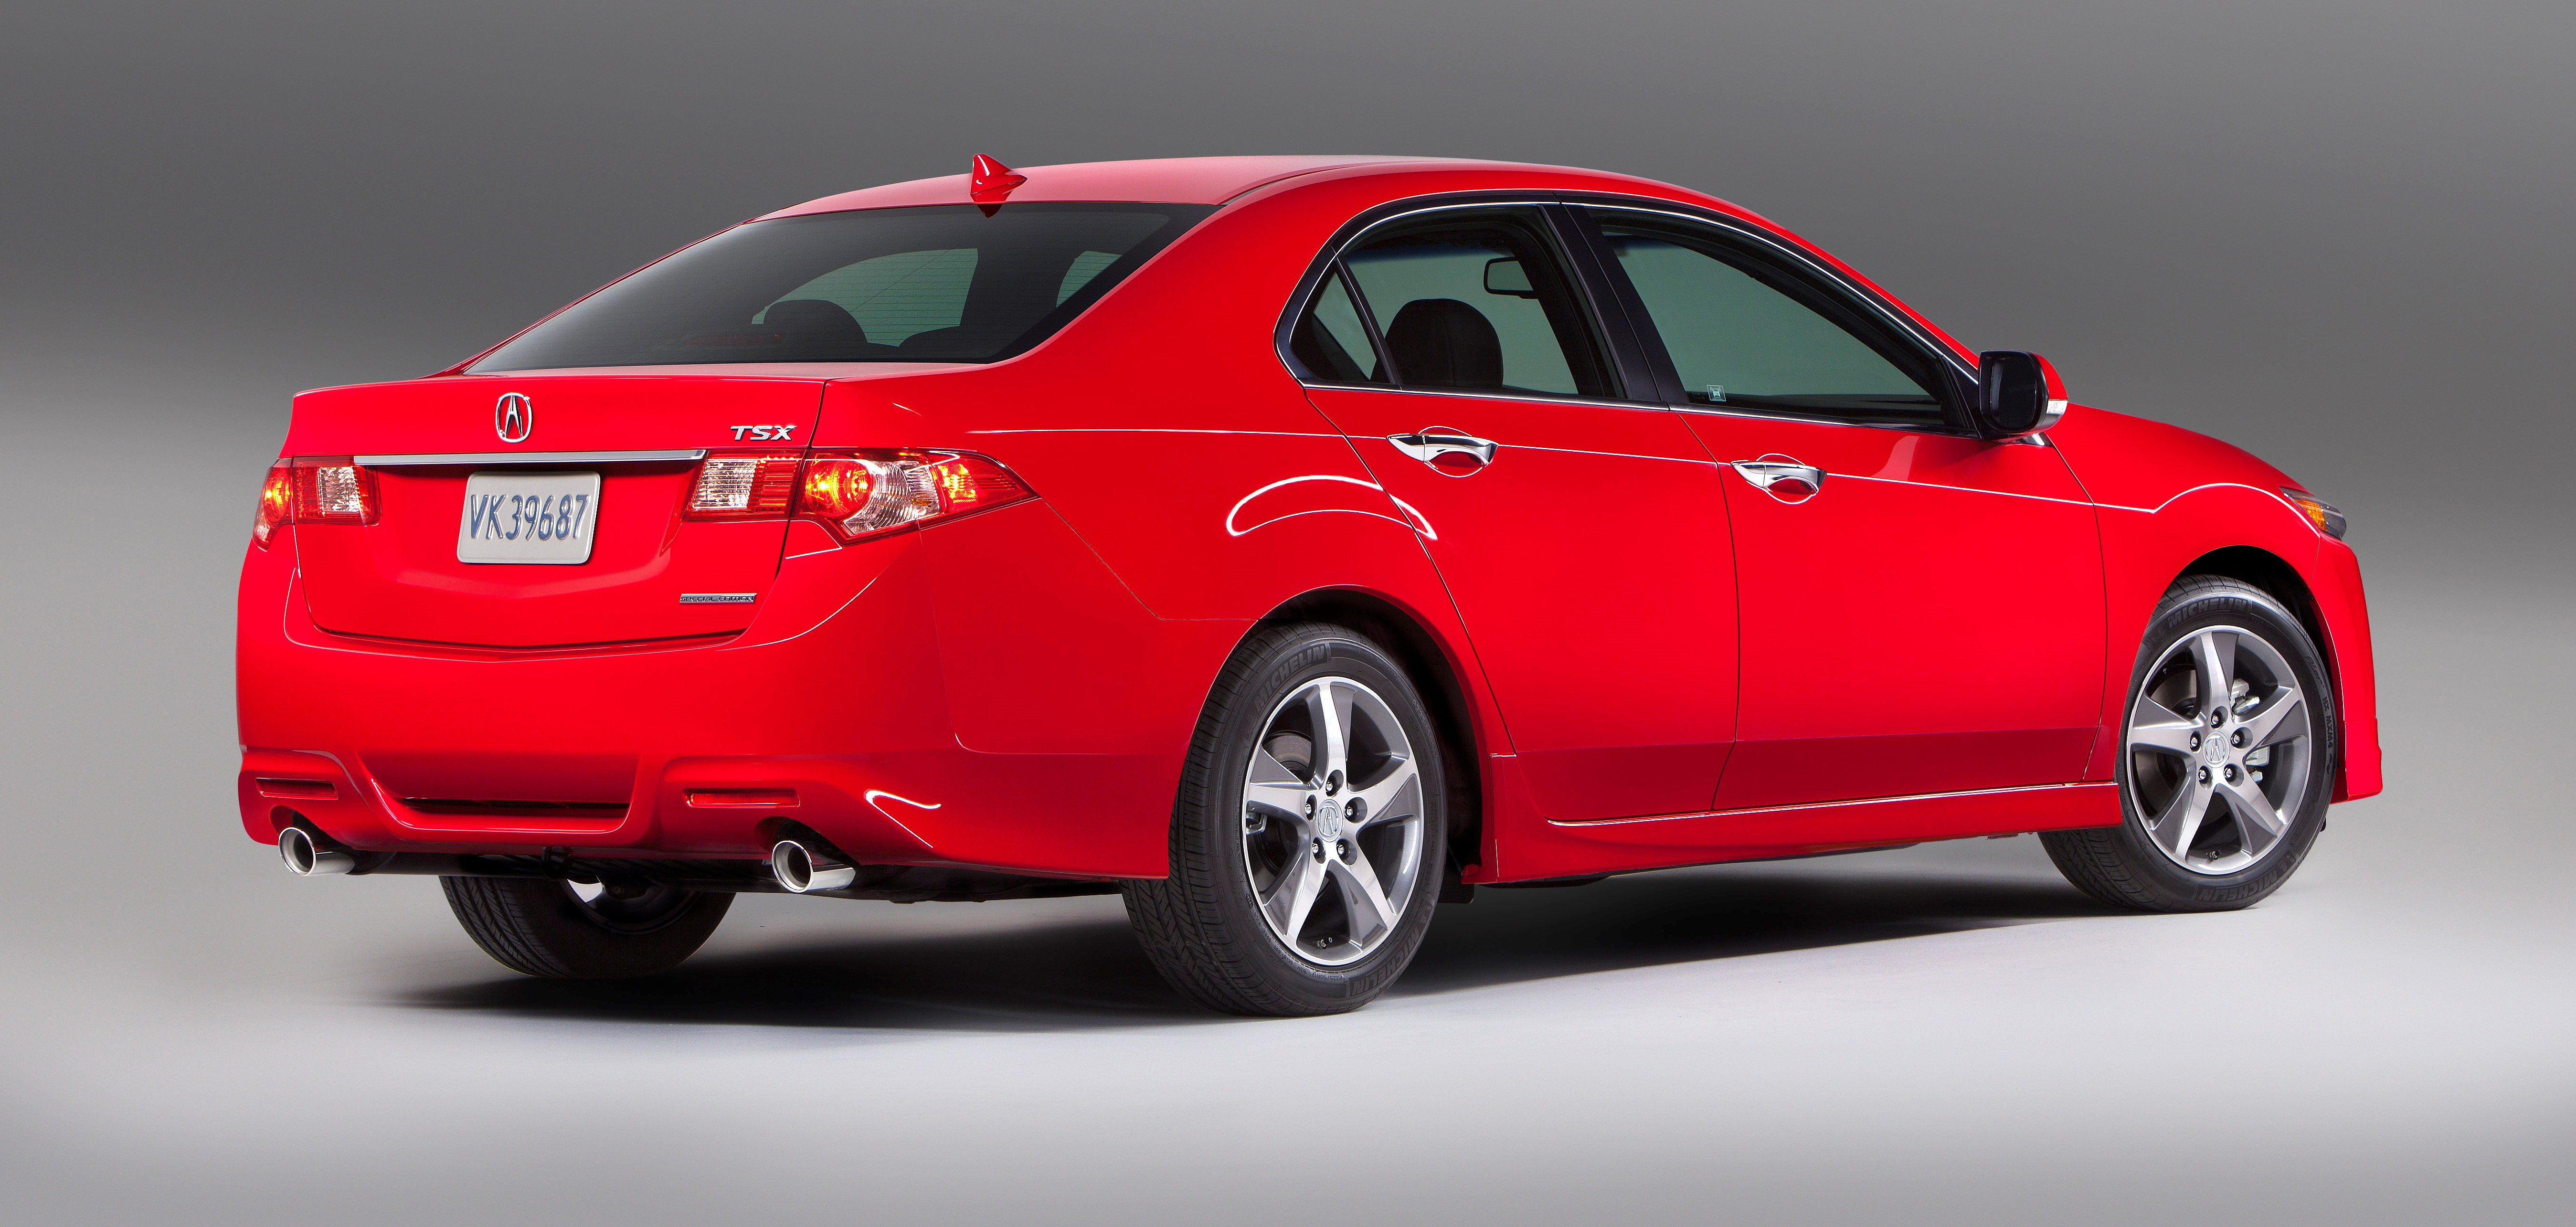 tsx review official photos info reviews edition driver and photo acura s news car road original test special